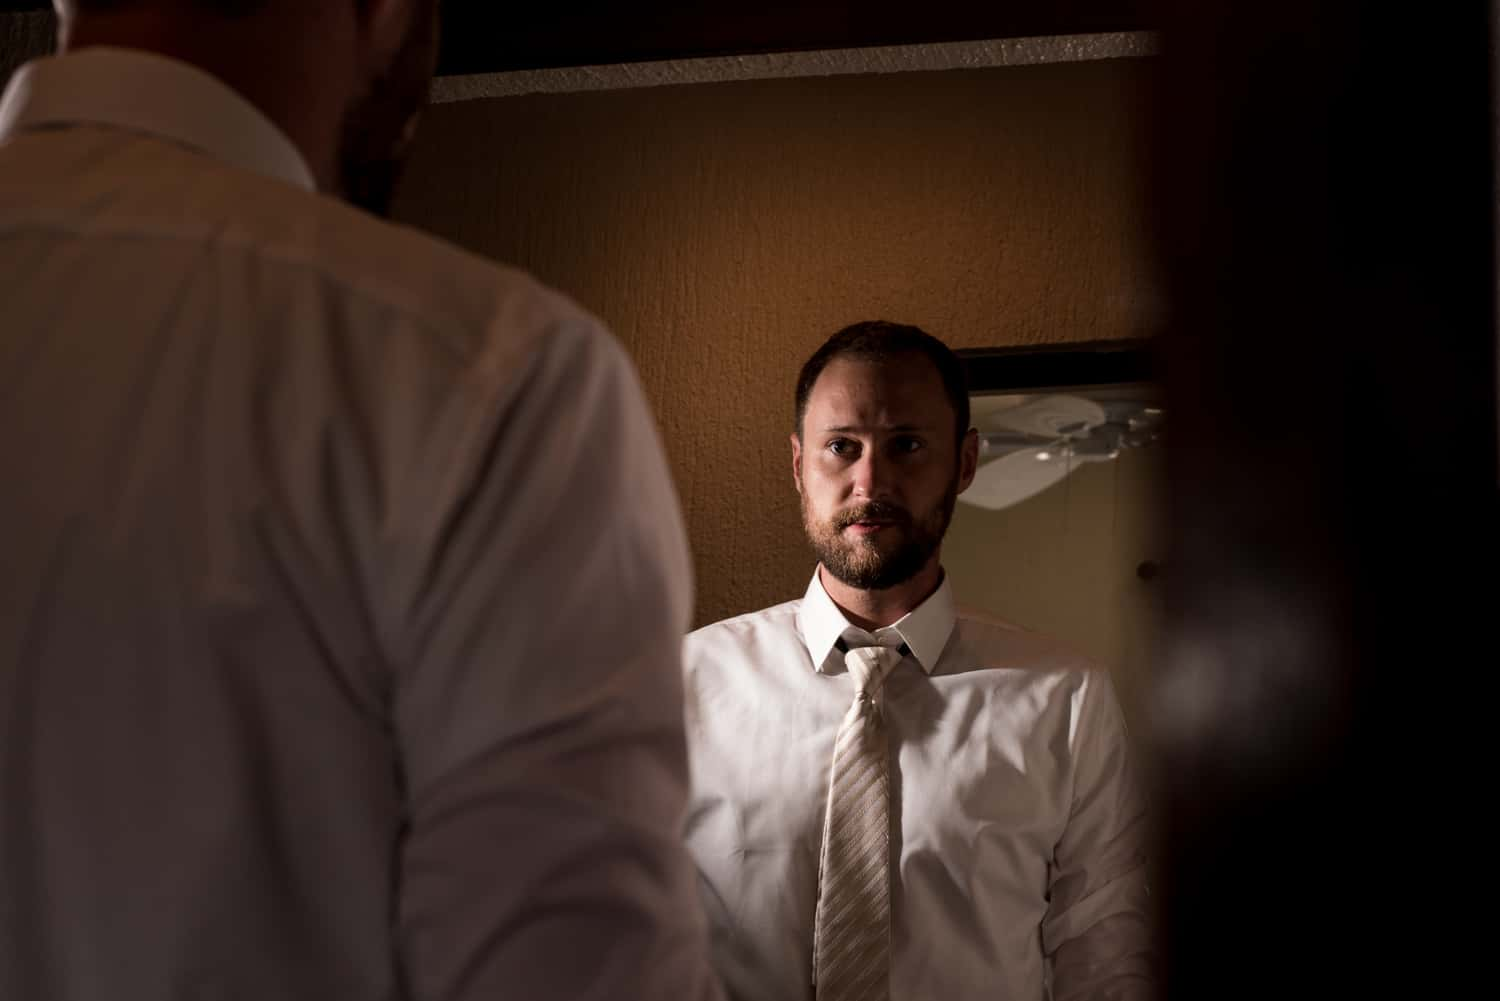 Groom looking at himself in the mirror